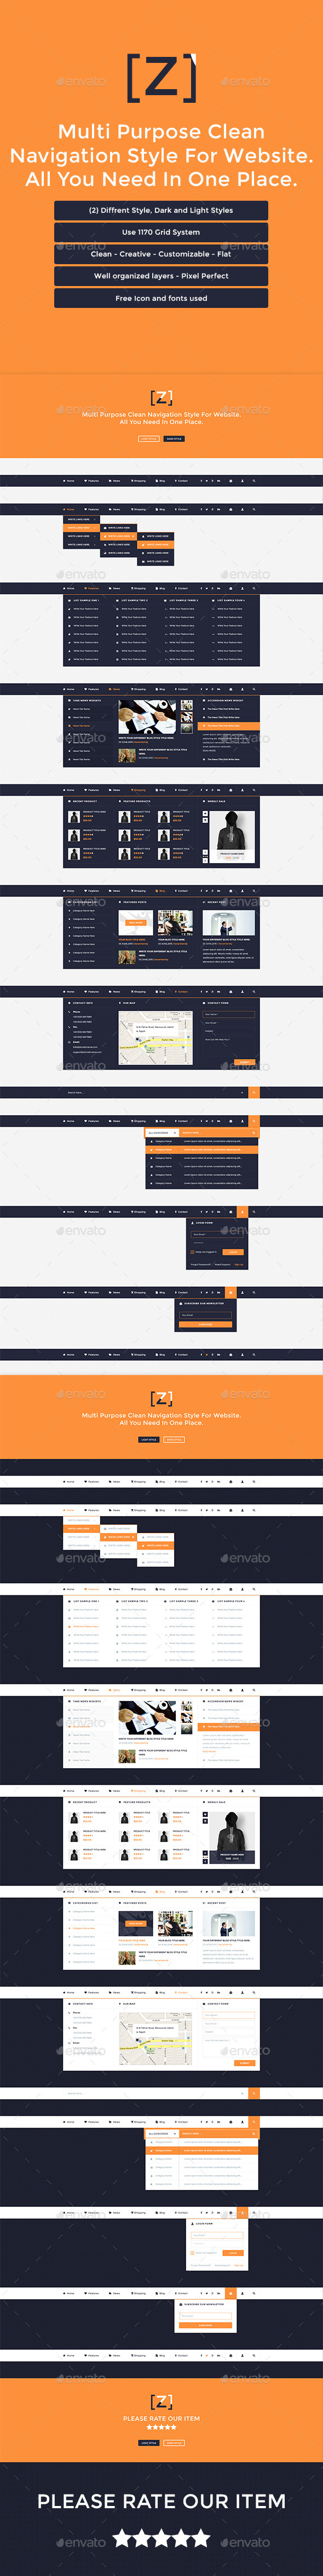 Z - Multi Purpose Clean Navigation For Website - Navigation Bars Web Elements